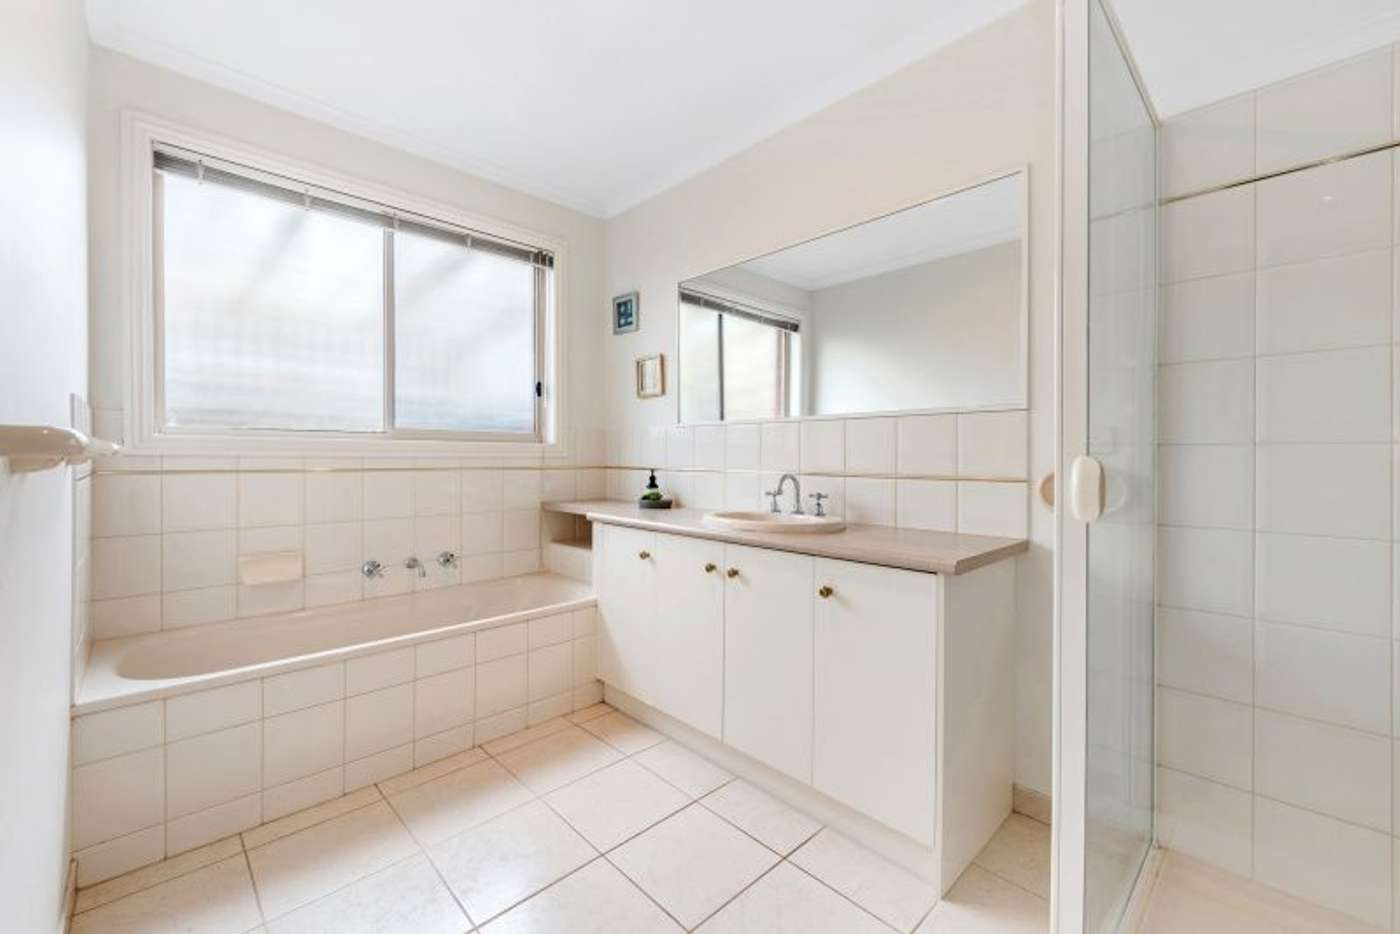 Seventh view of Homely house listing, 14 Magpie Close, Lara VIC 3212